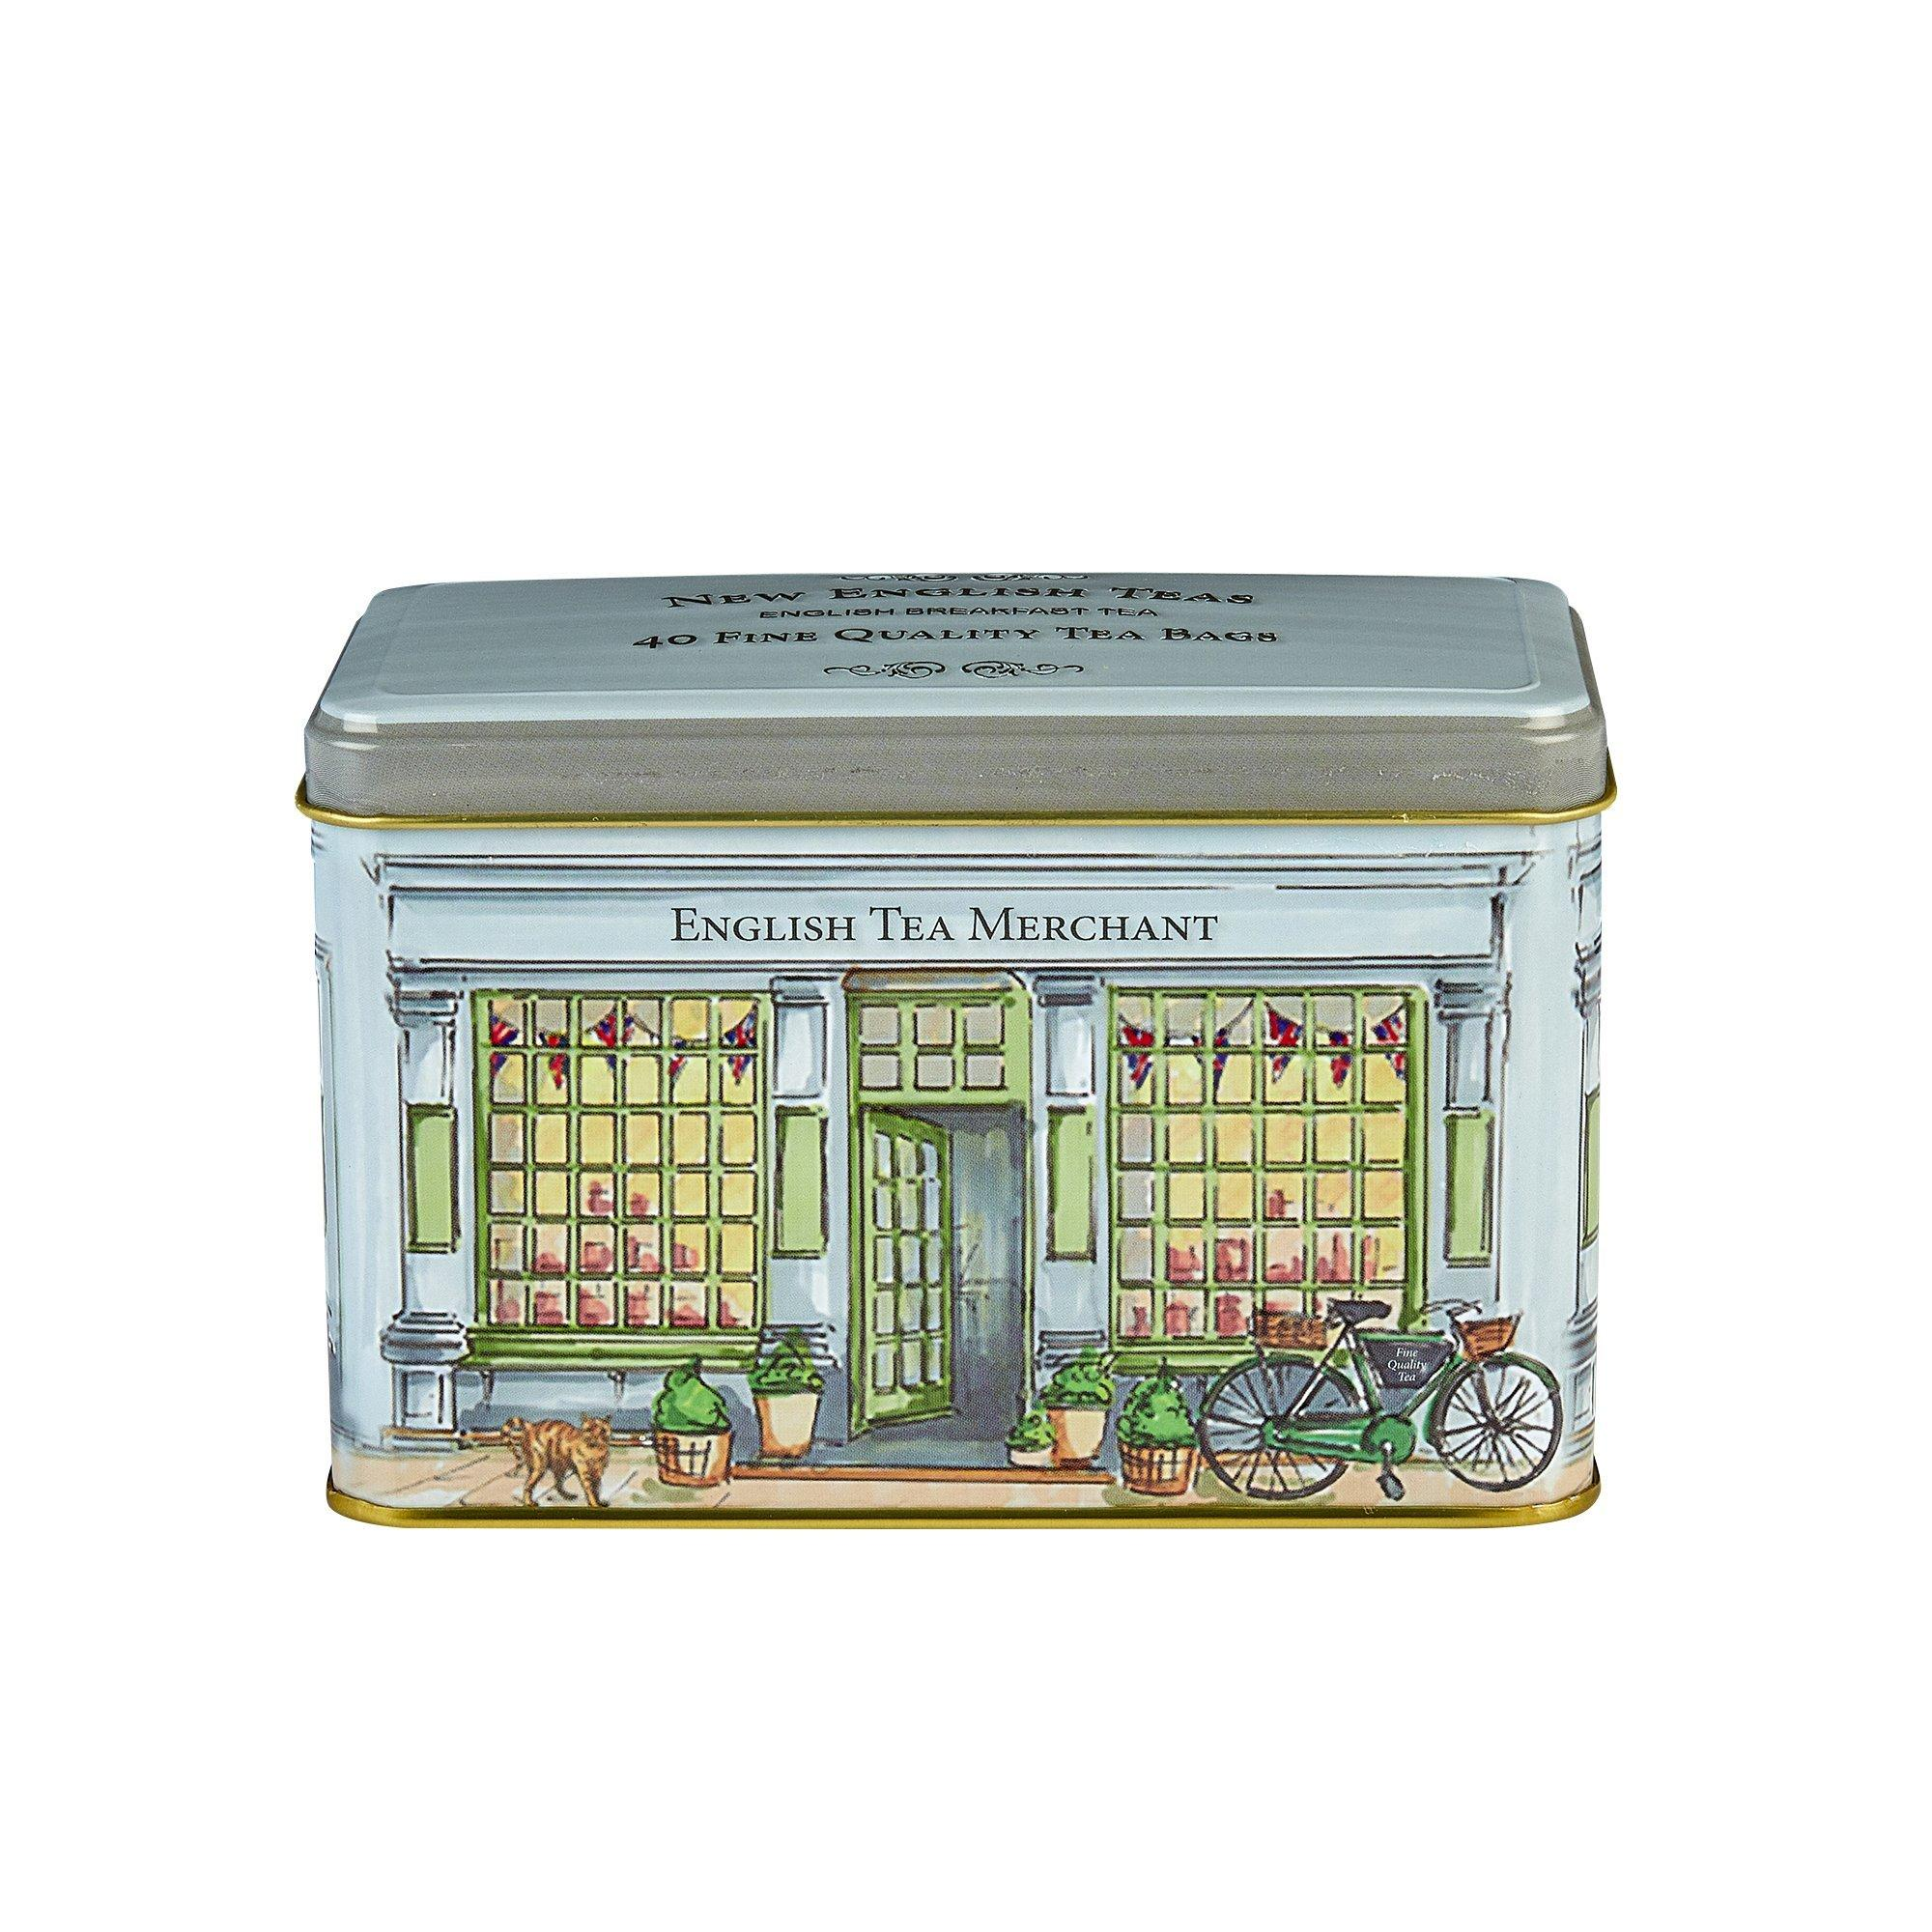 Vintage Tea Merchants English Breakfast Tea Shop Tin 40 Teabags Black Tea New English Teas